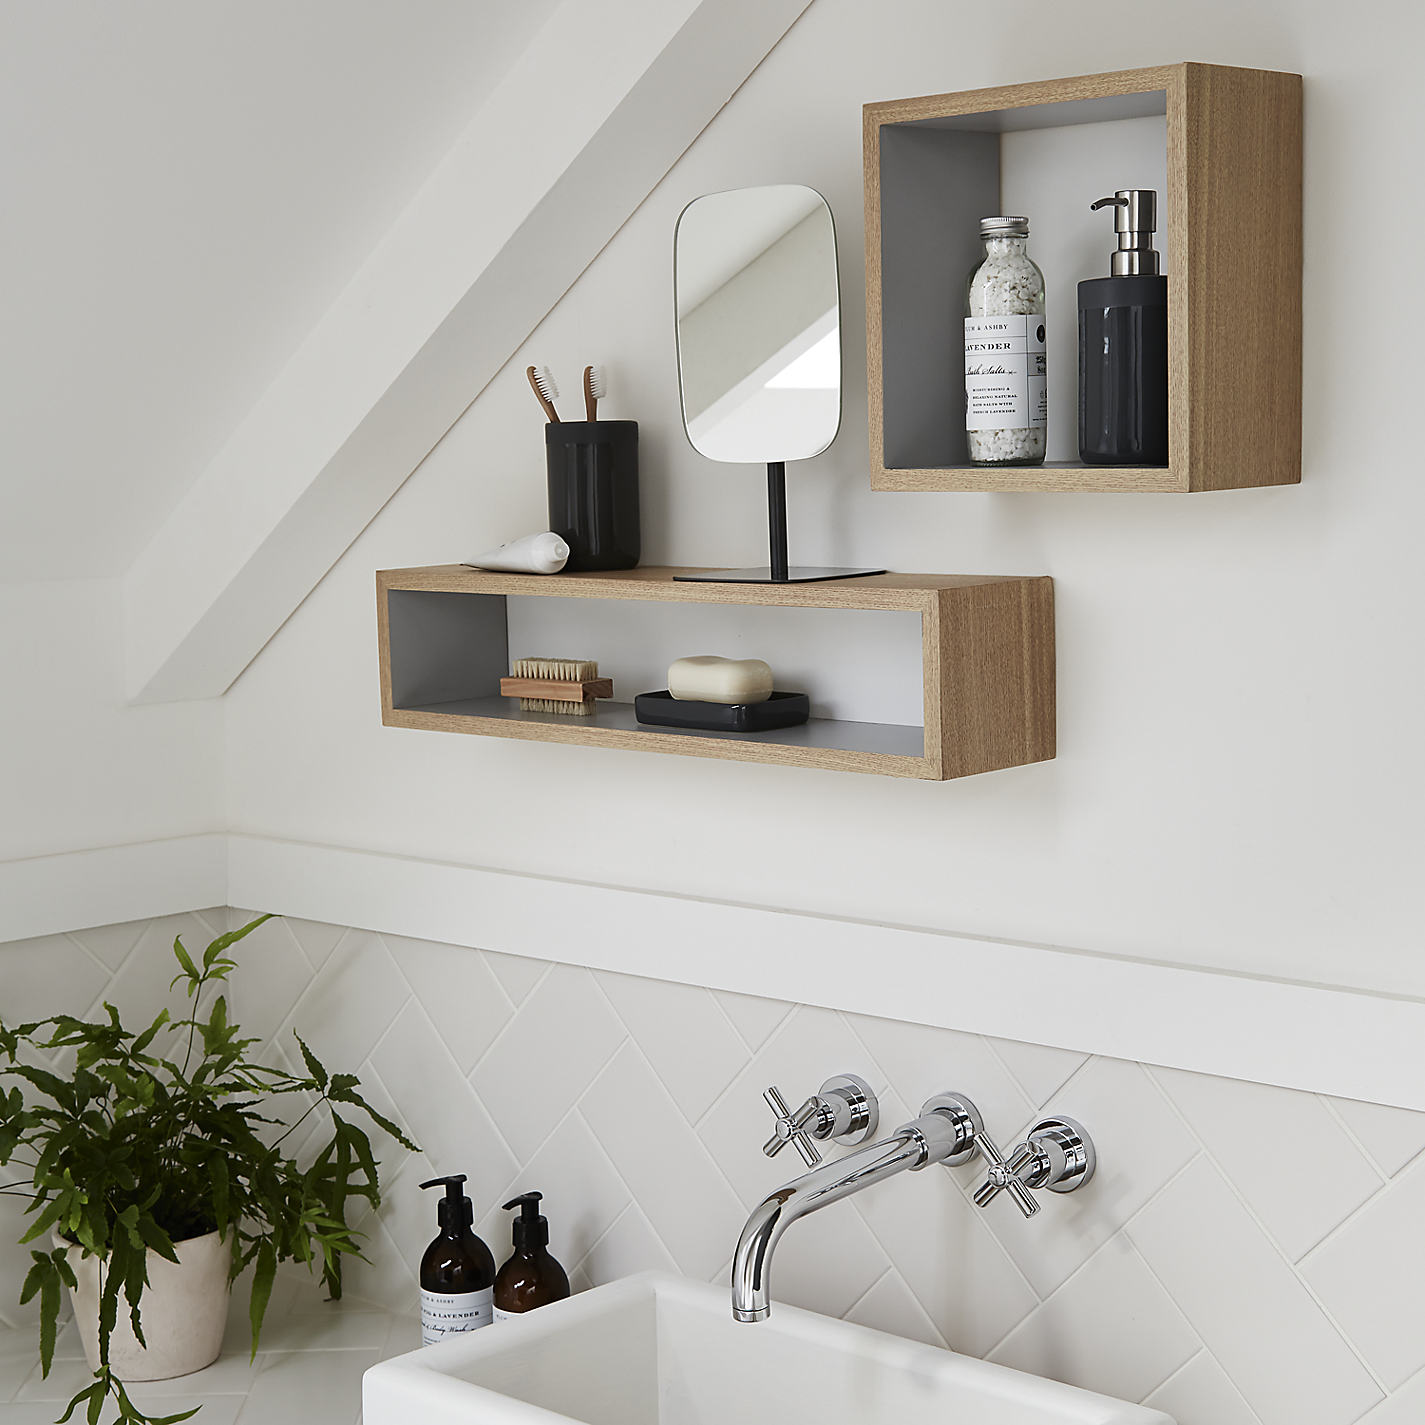 Bathroom Mirror Lights John Lewis buy design projectjohn lewis no.008 rectangular bathroom wall